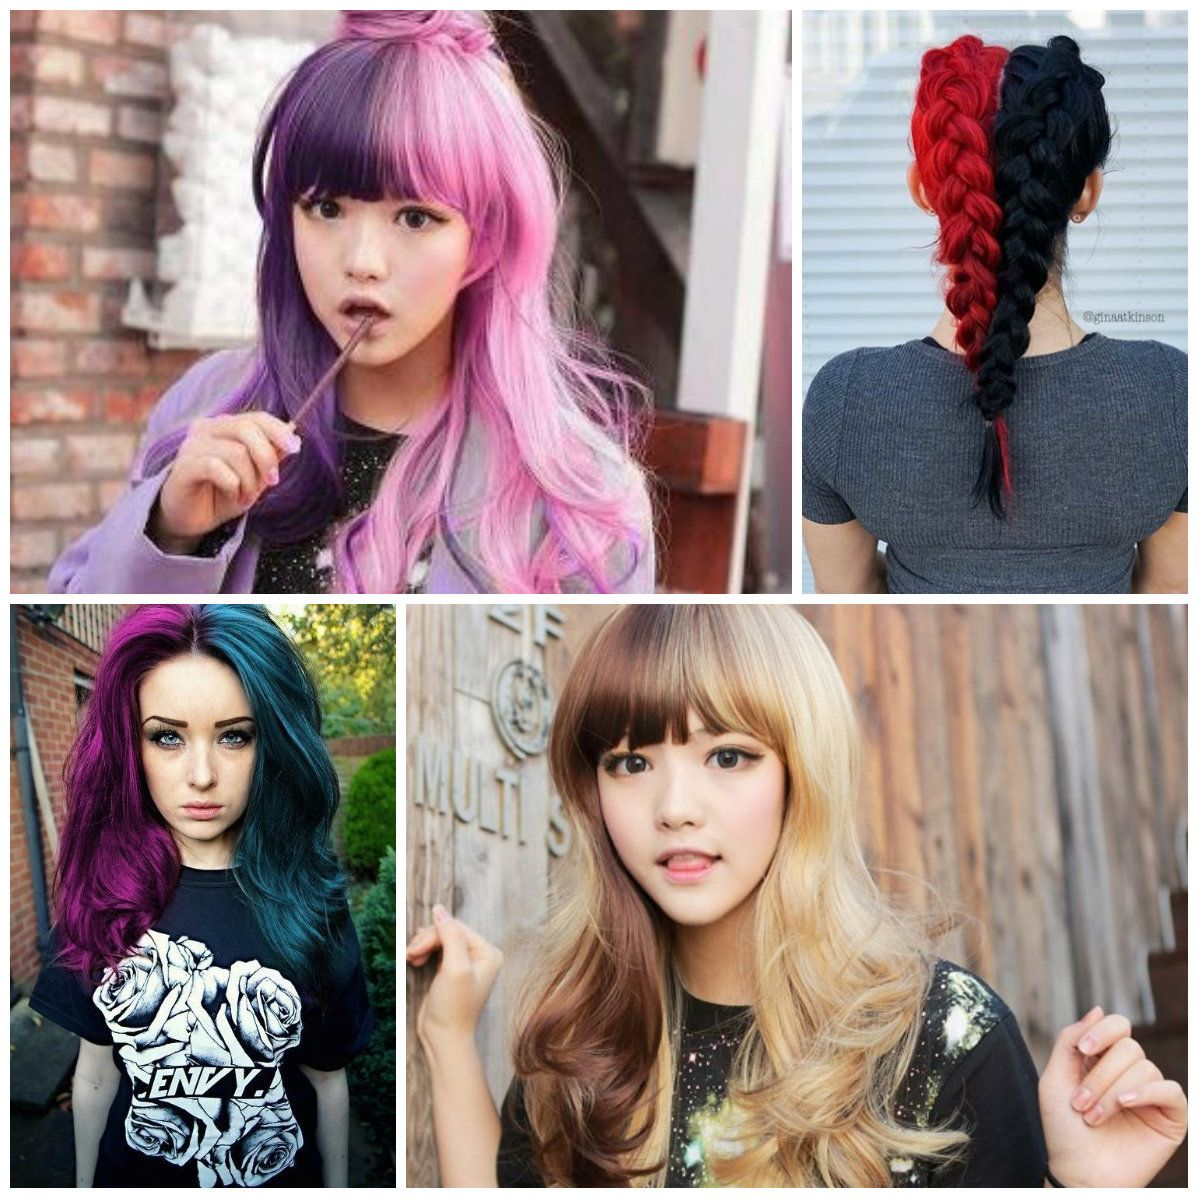 Pin By Emma Adeane On Hair Color Inspo In 2020 Hair Inspo Color Hair Color For Black Hair Hair Dye Colors